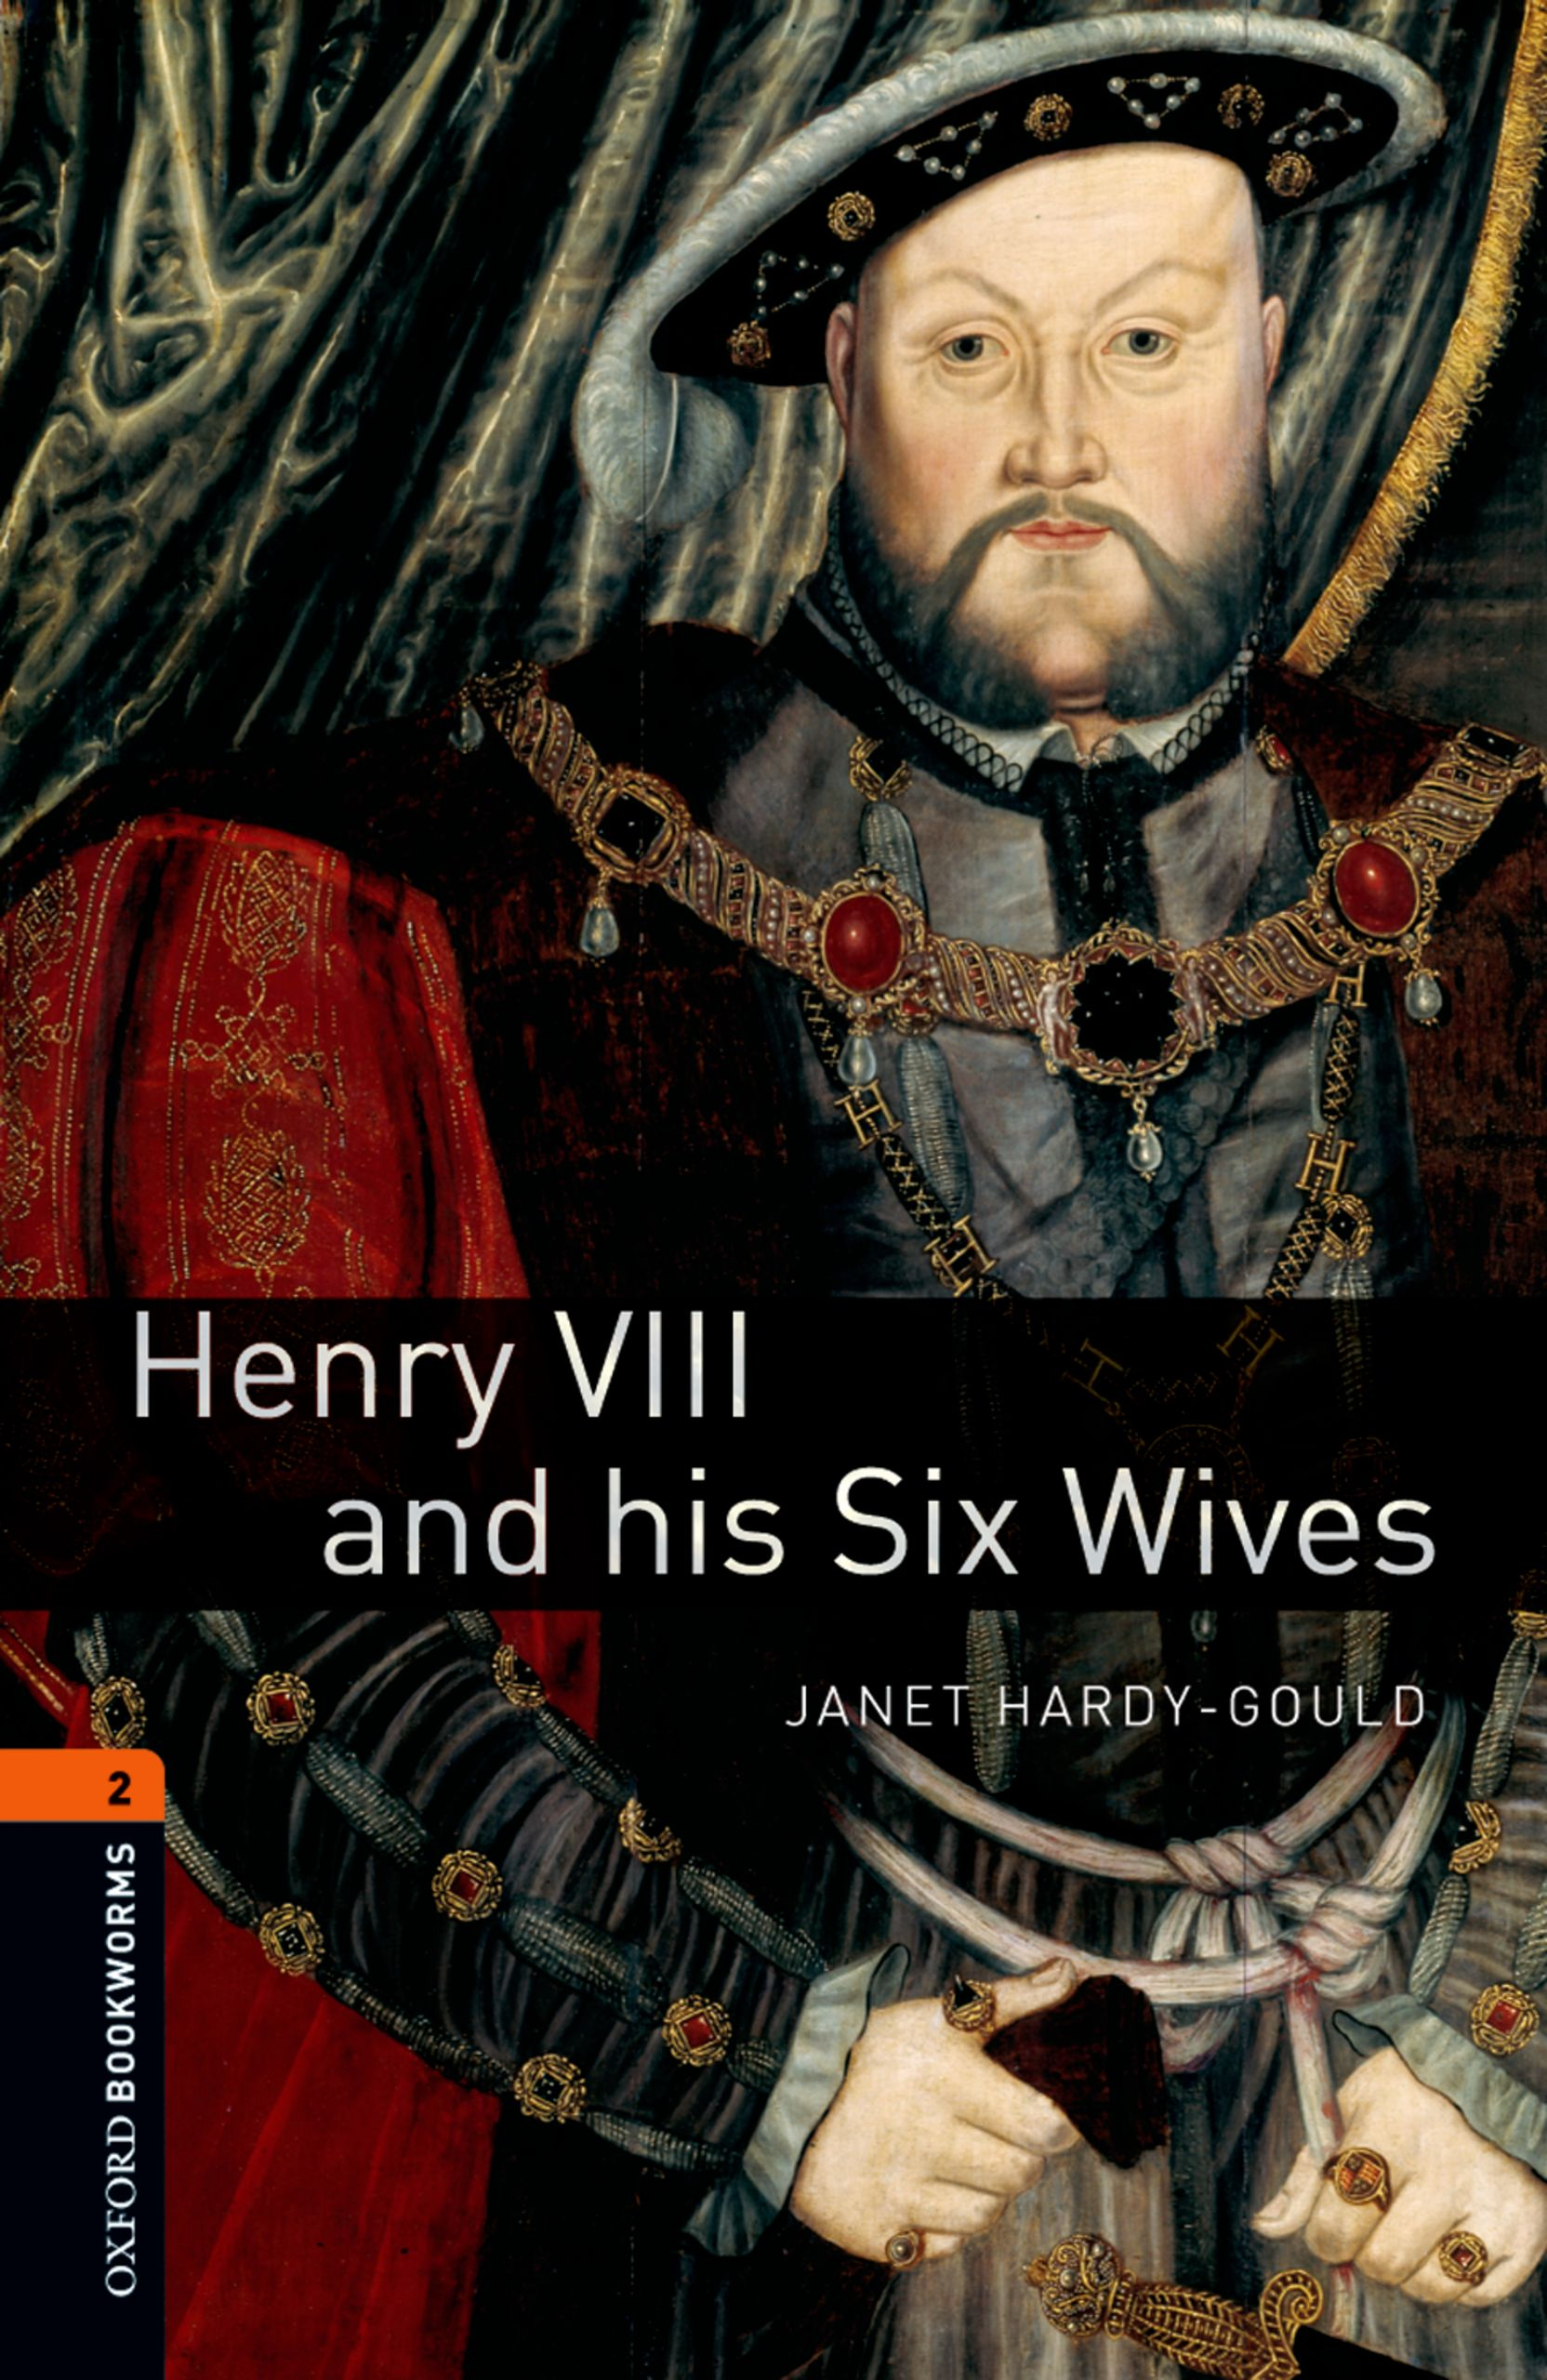 лучшая цена Janet Hardy-Gould Henry VIII and his Six Wives